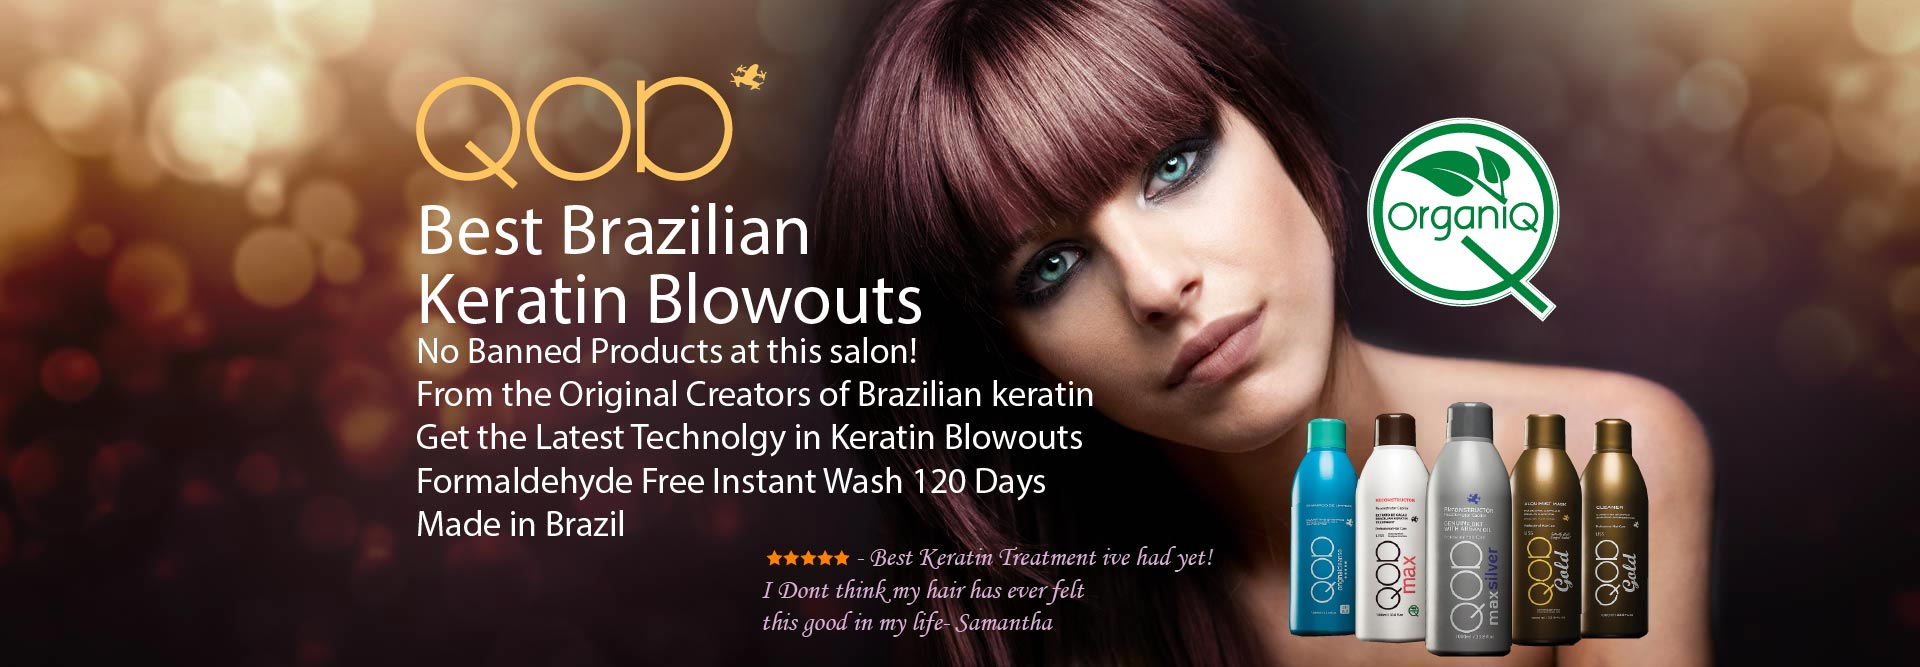 QOD Brazilian Blowout Bangkok keratin hair straightening treatments